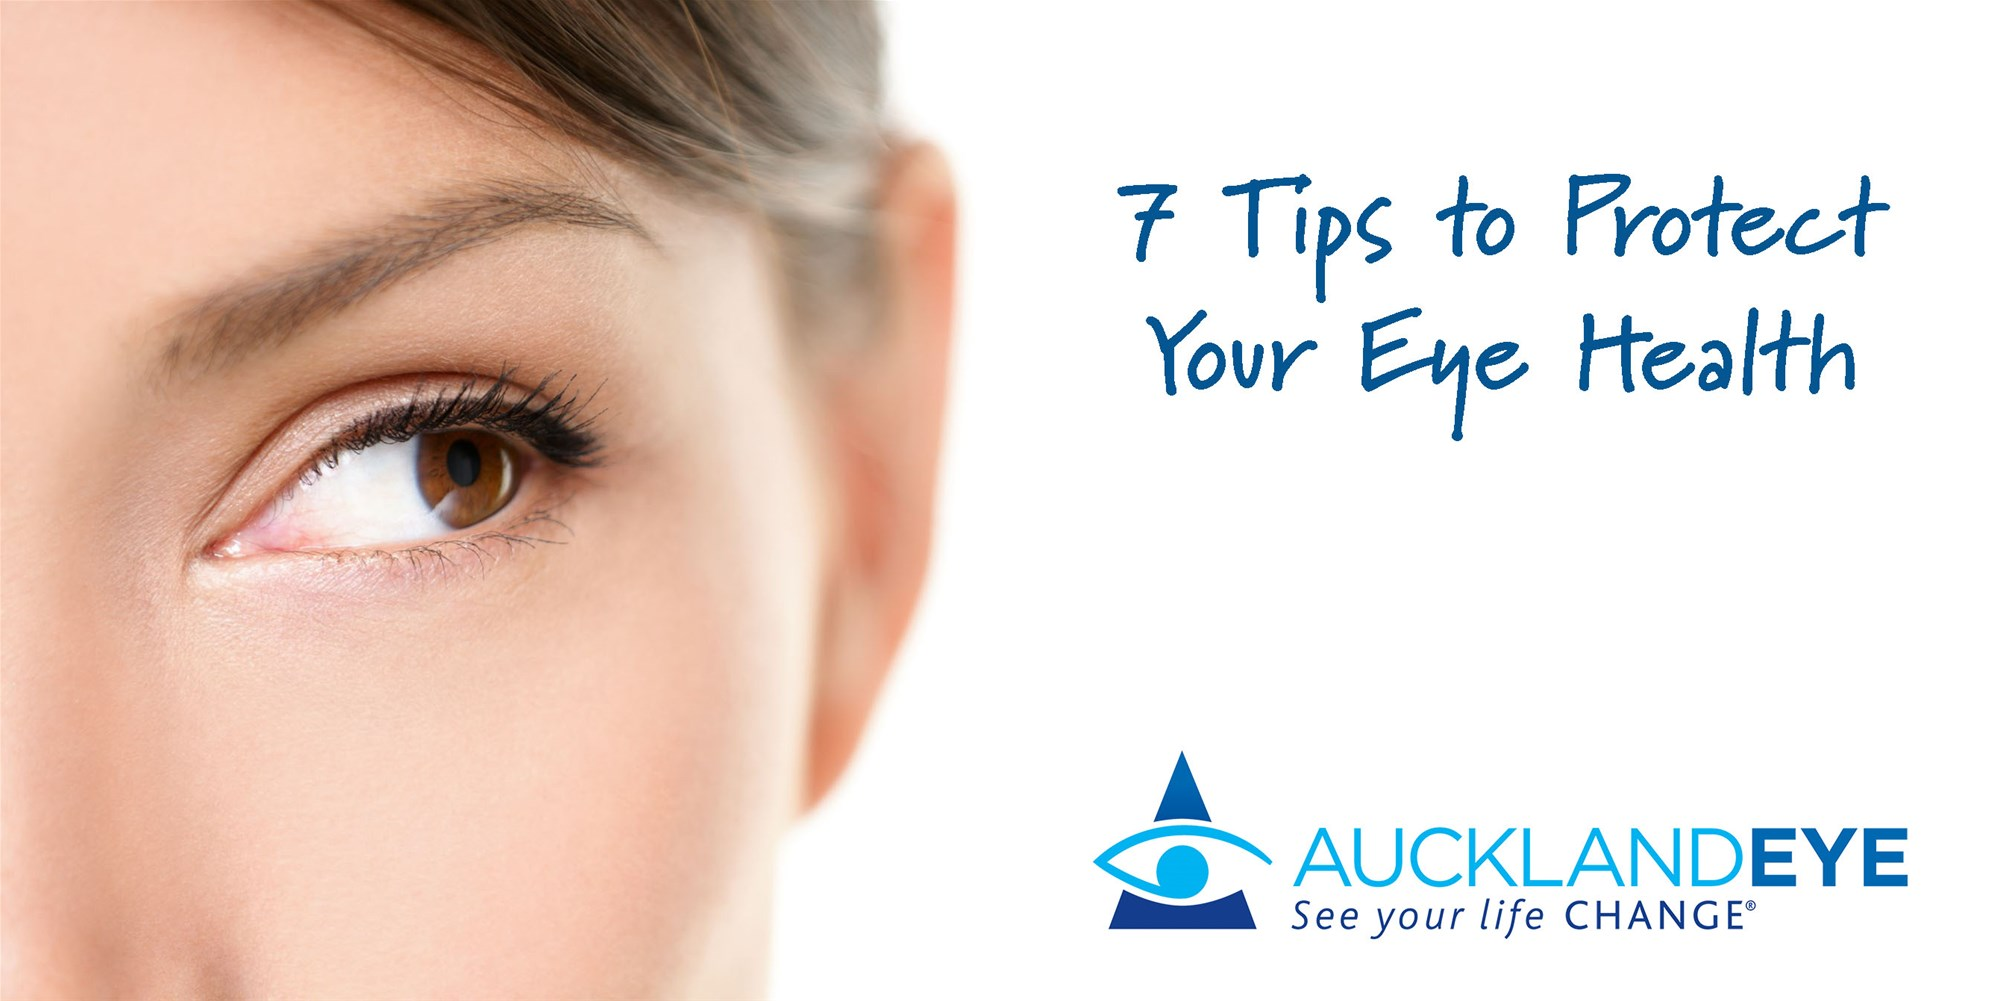 An ophthalmologist will preserve the health of your eyes